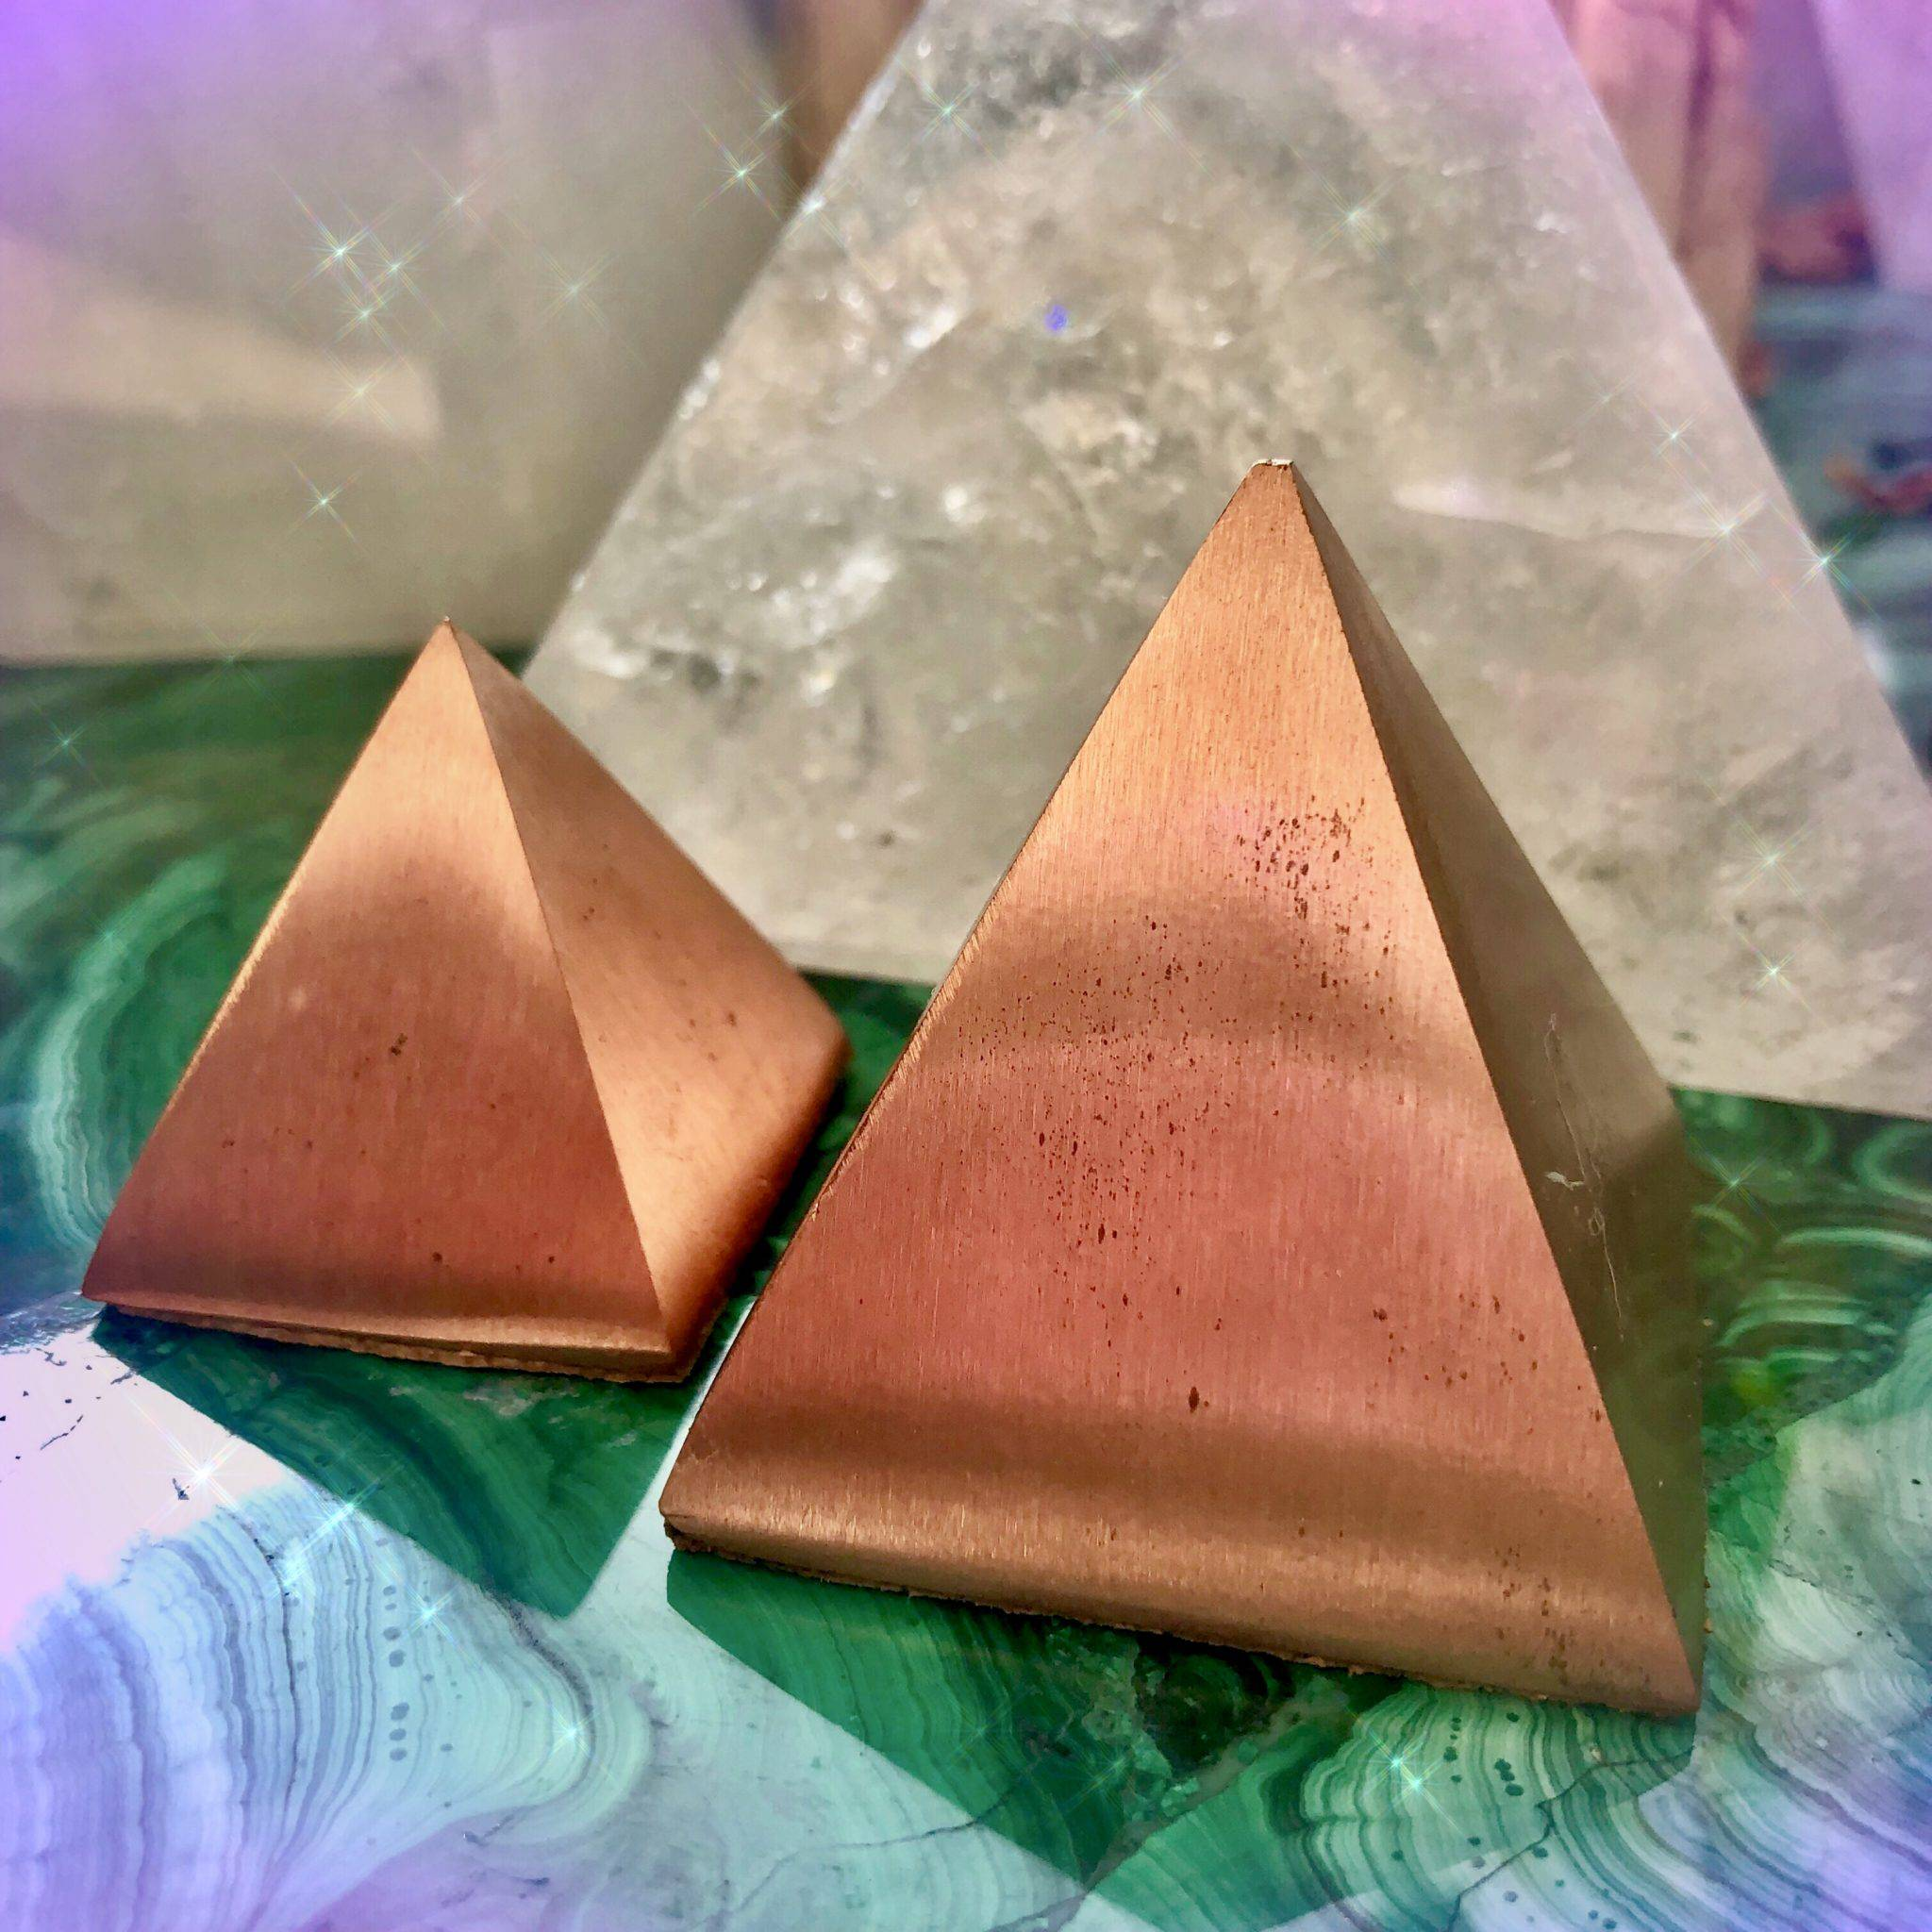 Energetic Conducting Copper Pyramids for channeling positivity